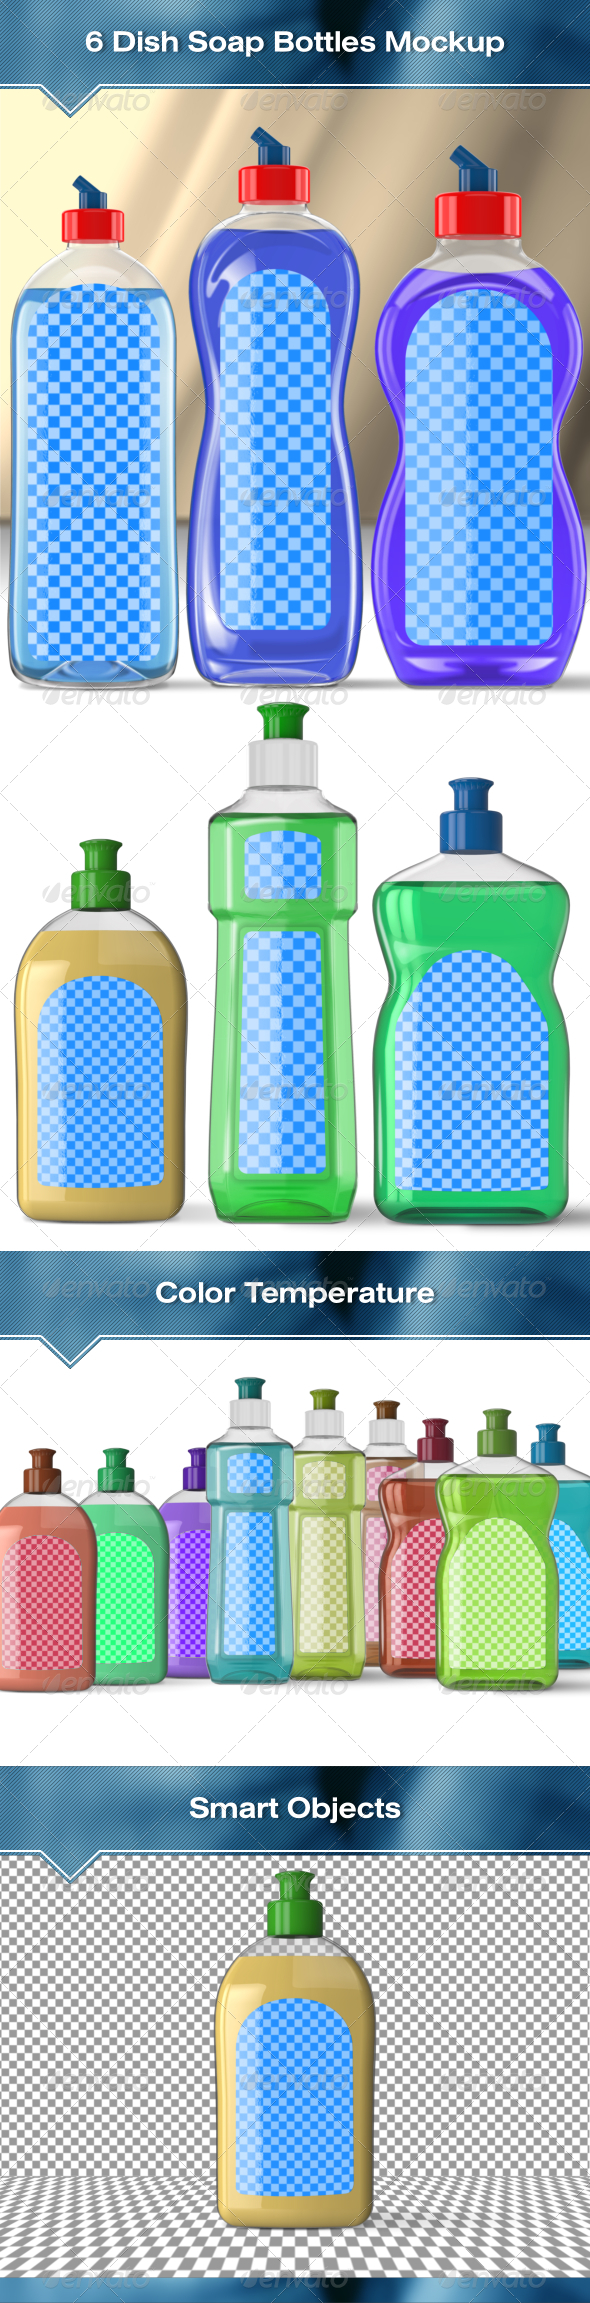 6 Dish Soap Bottles Mock-Up - Packaging Product Mock-Ups